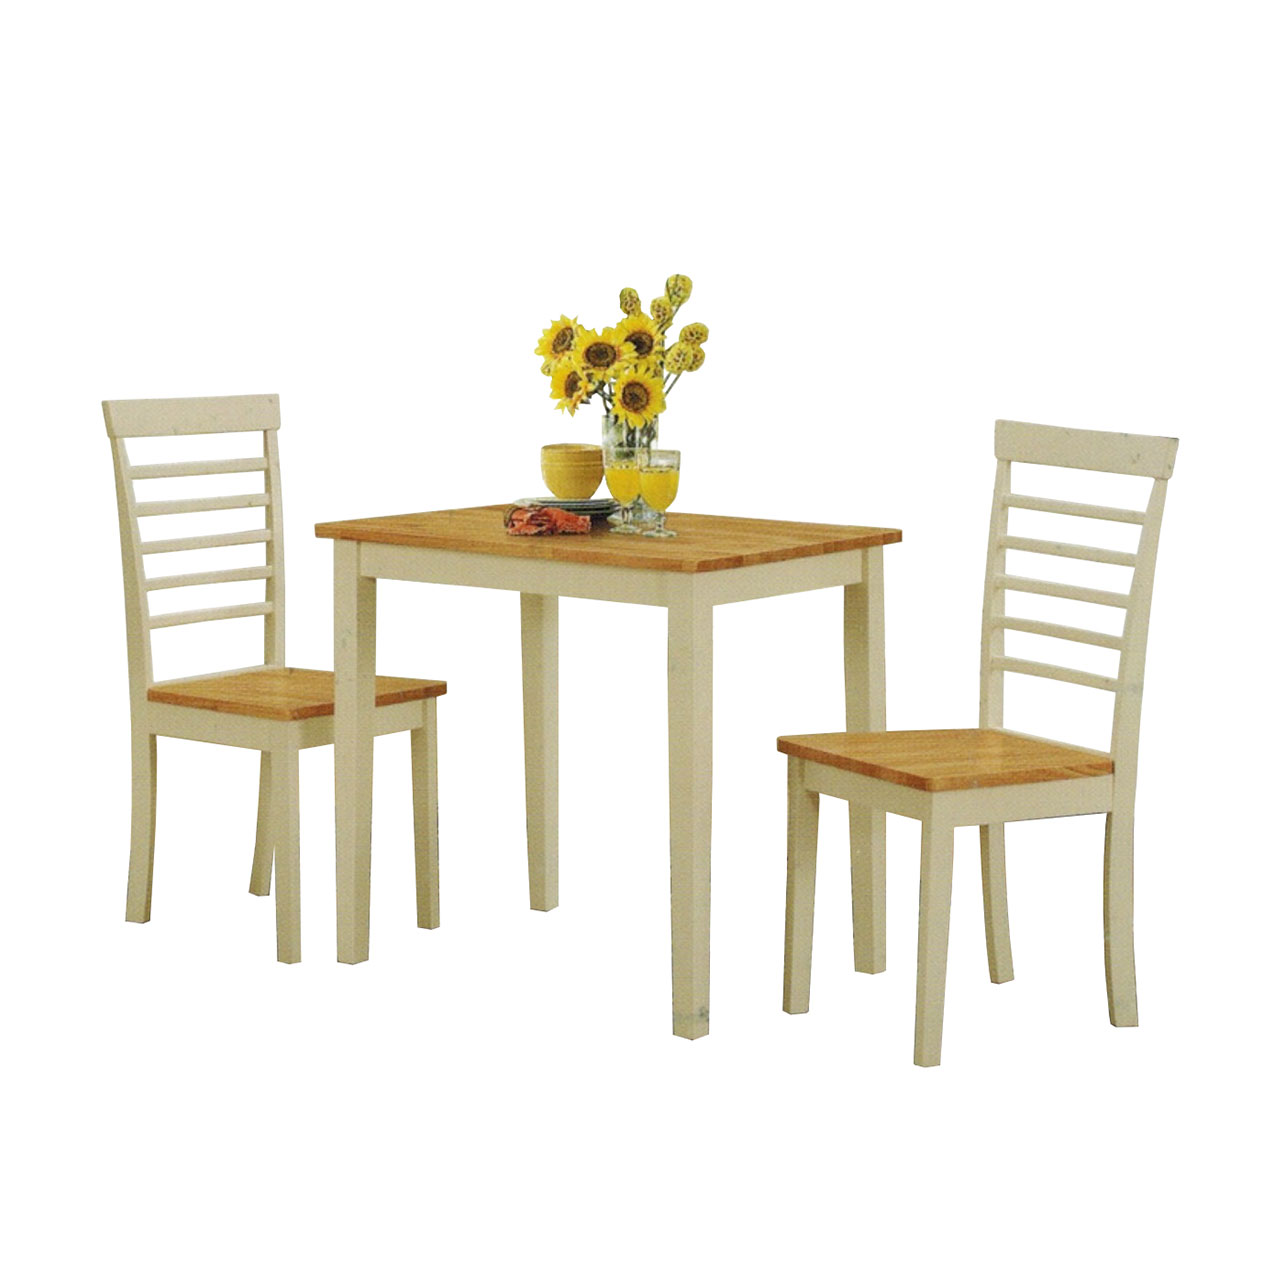 damiana dining set  sc 1 st  Urban Concepts & Damiana Dining Set Furniture Store Manila Philippines - Urban Concepts